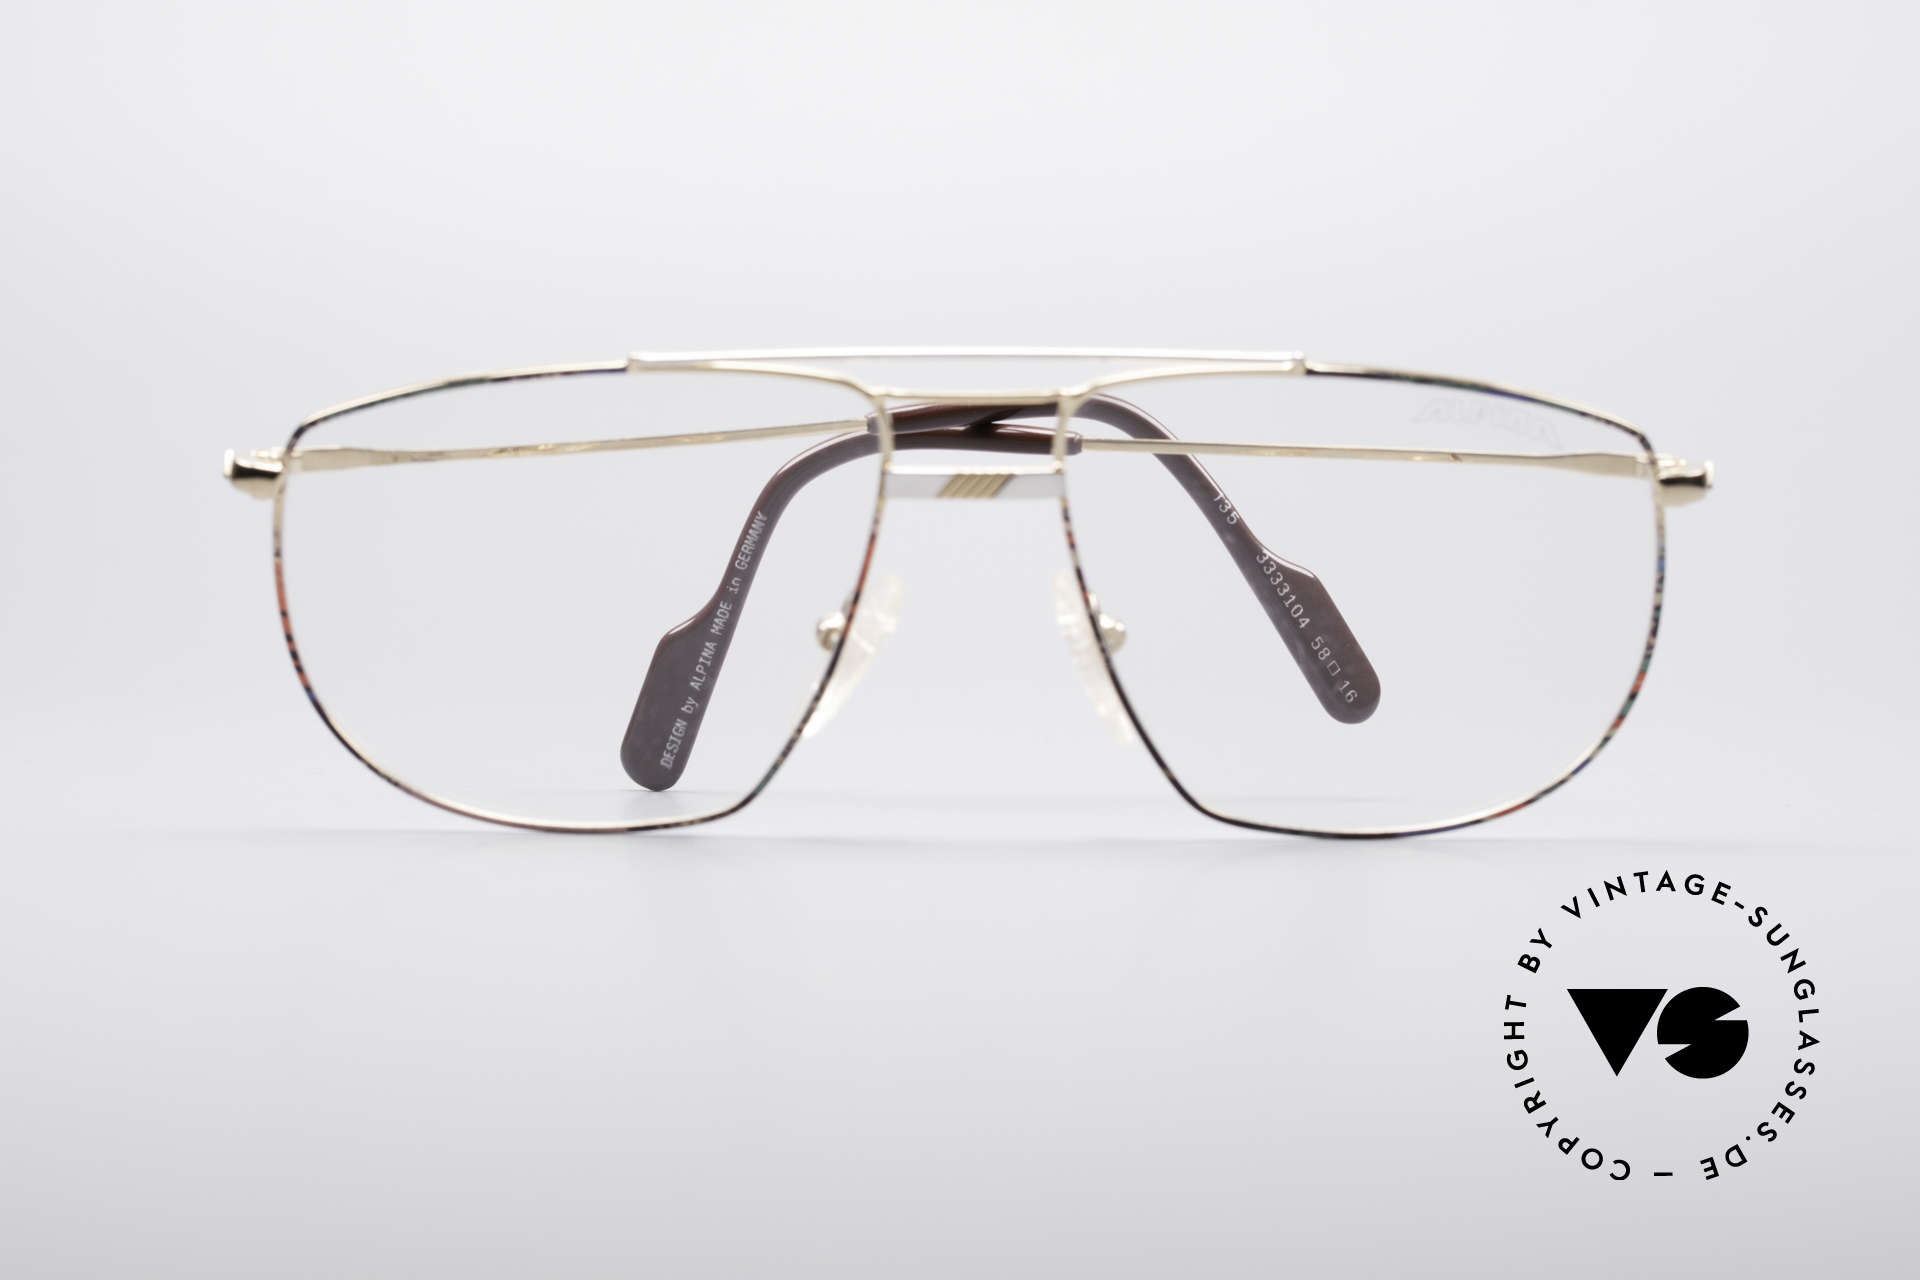 Alpina FM69 90's Vintage Metal Frame, clear demo lenses can be replaced with prescriptions, Made for Men